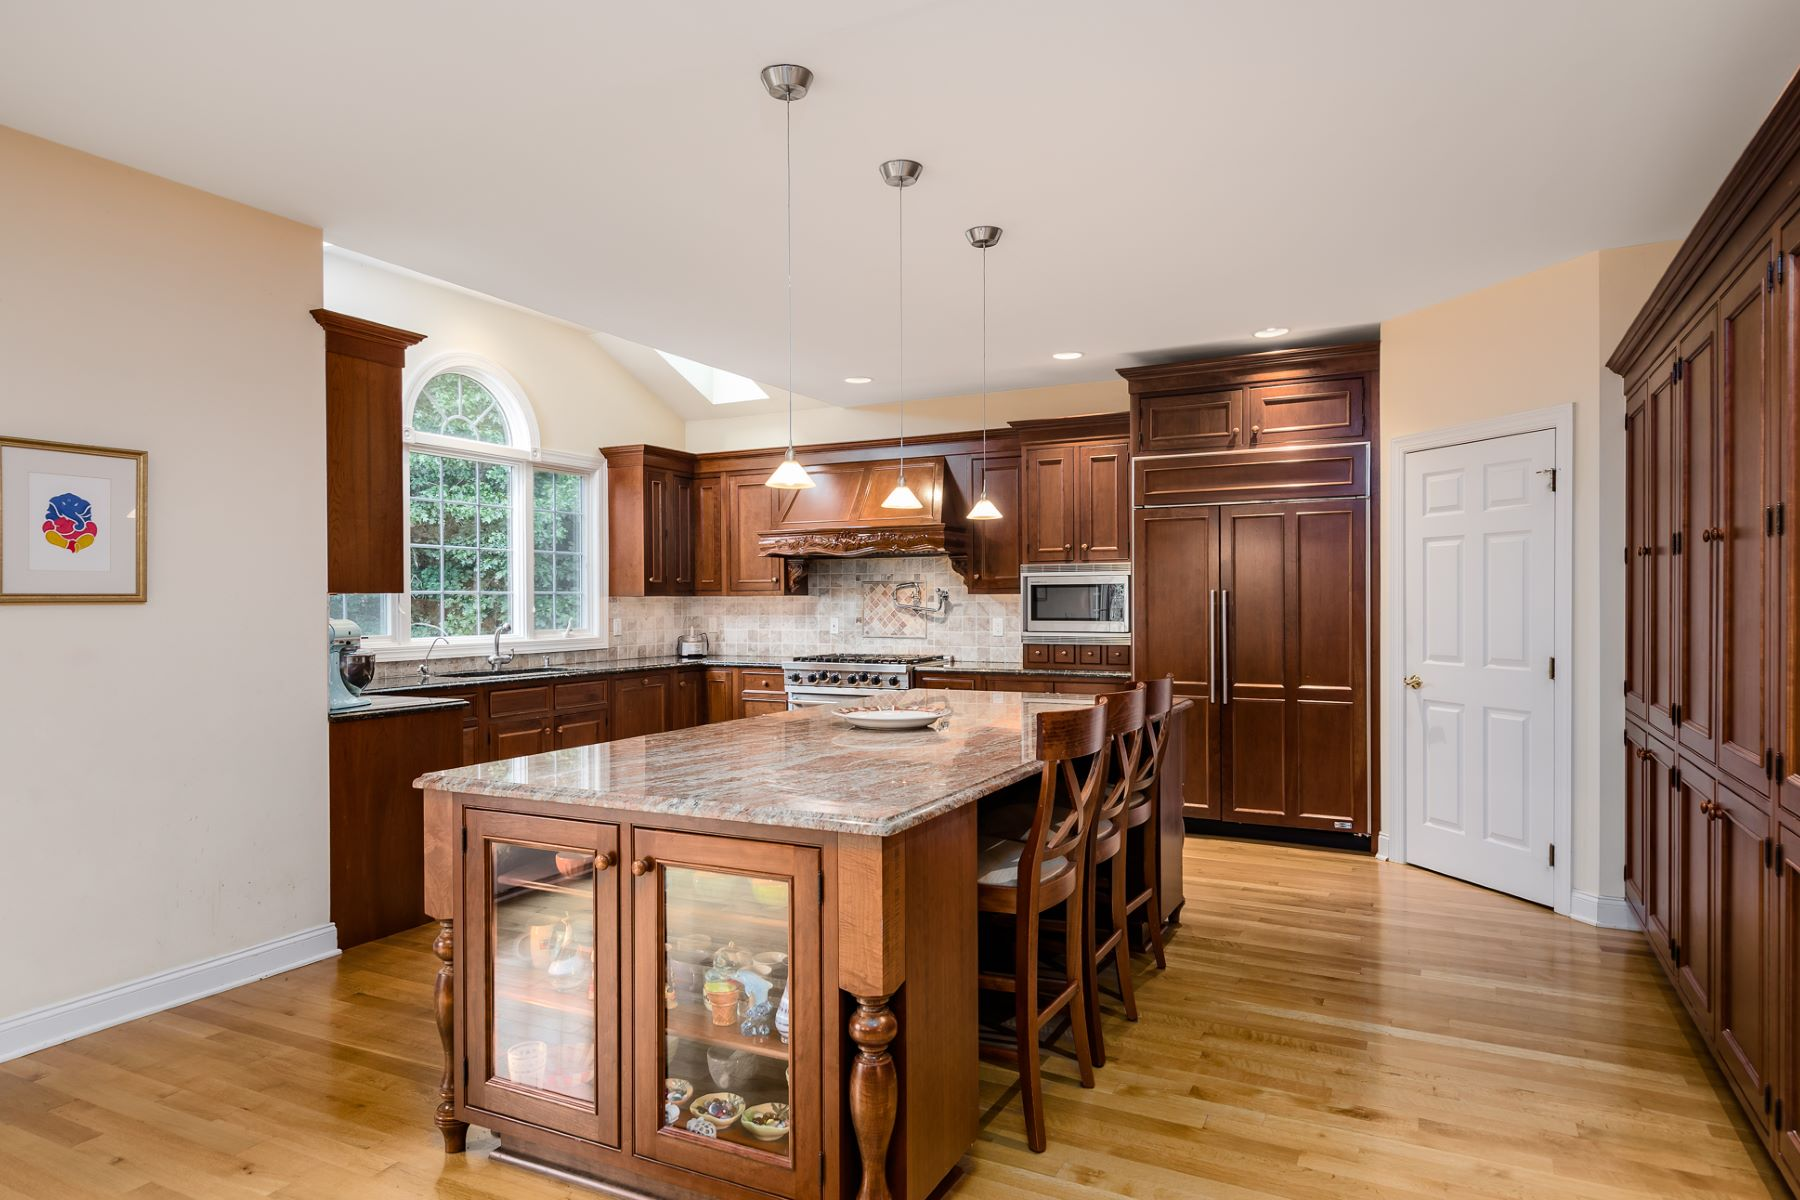 Additional photo for property listing at Cranbury Colonial Celebrates Toll Brothers Luxury 14 Shady Brook Lane Cranbury, New Jersey 08512 United States